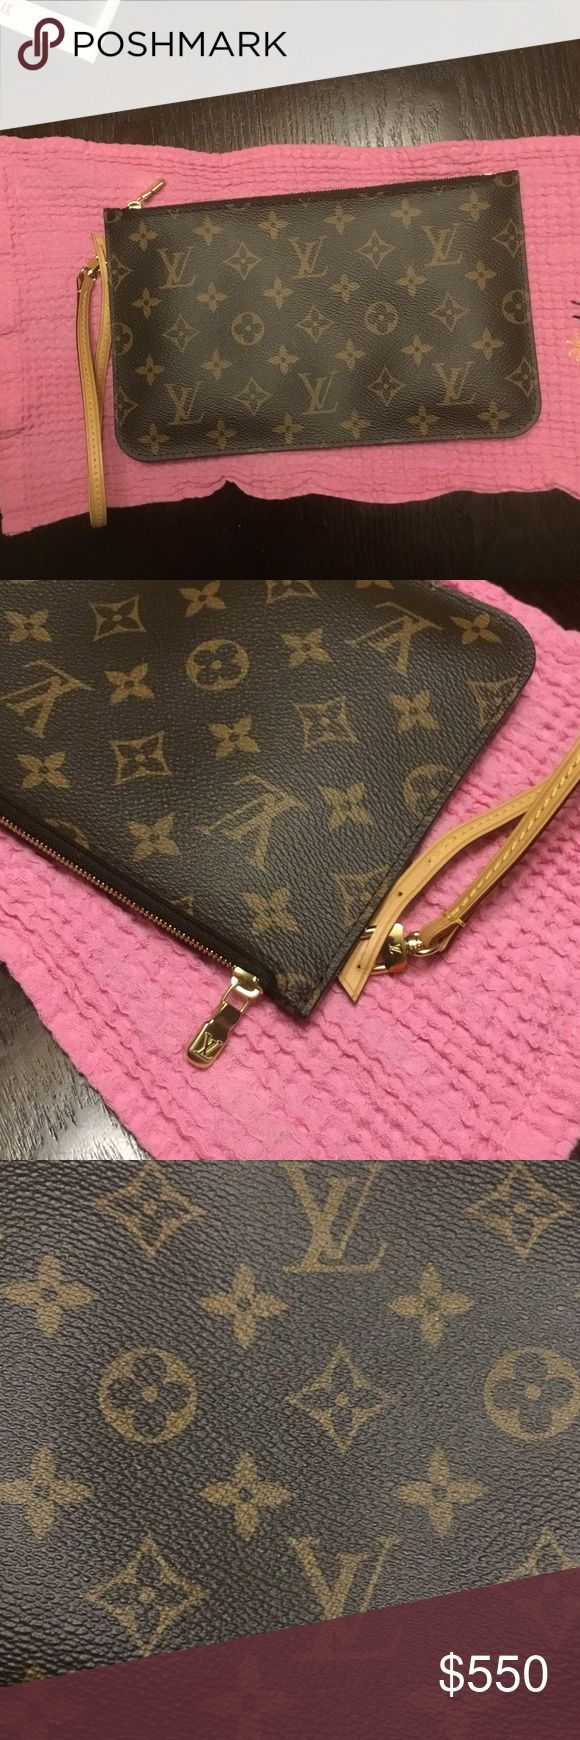 REAL Louis Vuitton pouch❣ NEW Real monogram Louis Vuitton pouch! Truly used ONCE at a wedding. It's like brand new (inside and out), I promise. Really only used that one time. I am a big purse person, who carries too much, so that's why I can't make use of this beautiful item. This is from the neverfull MM tote. It has an inside pocket. It's approximately 10 inches by 6 and a half inches. I have excellent reviews 😊 so you can rest assured. This is authentic and timeless. Fast shipping 📫…